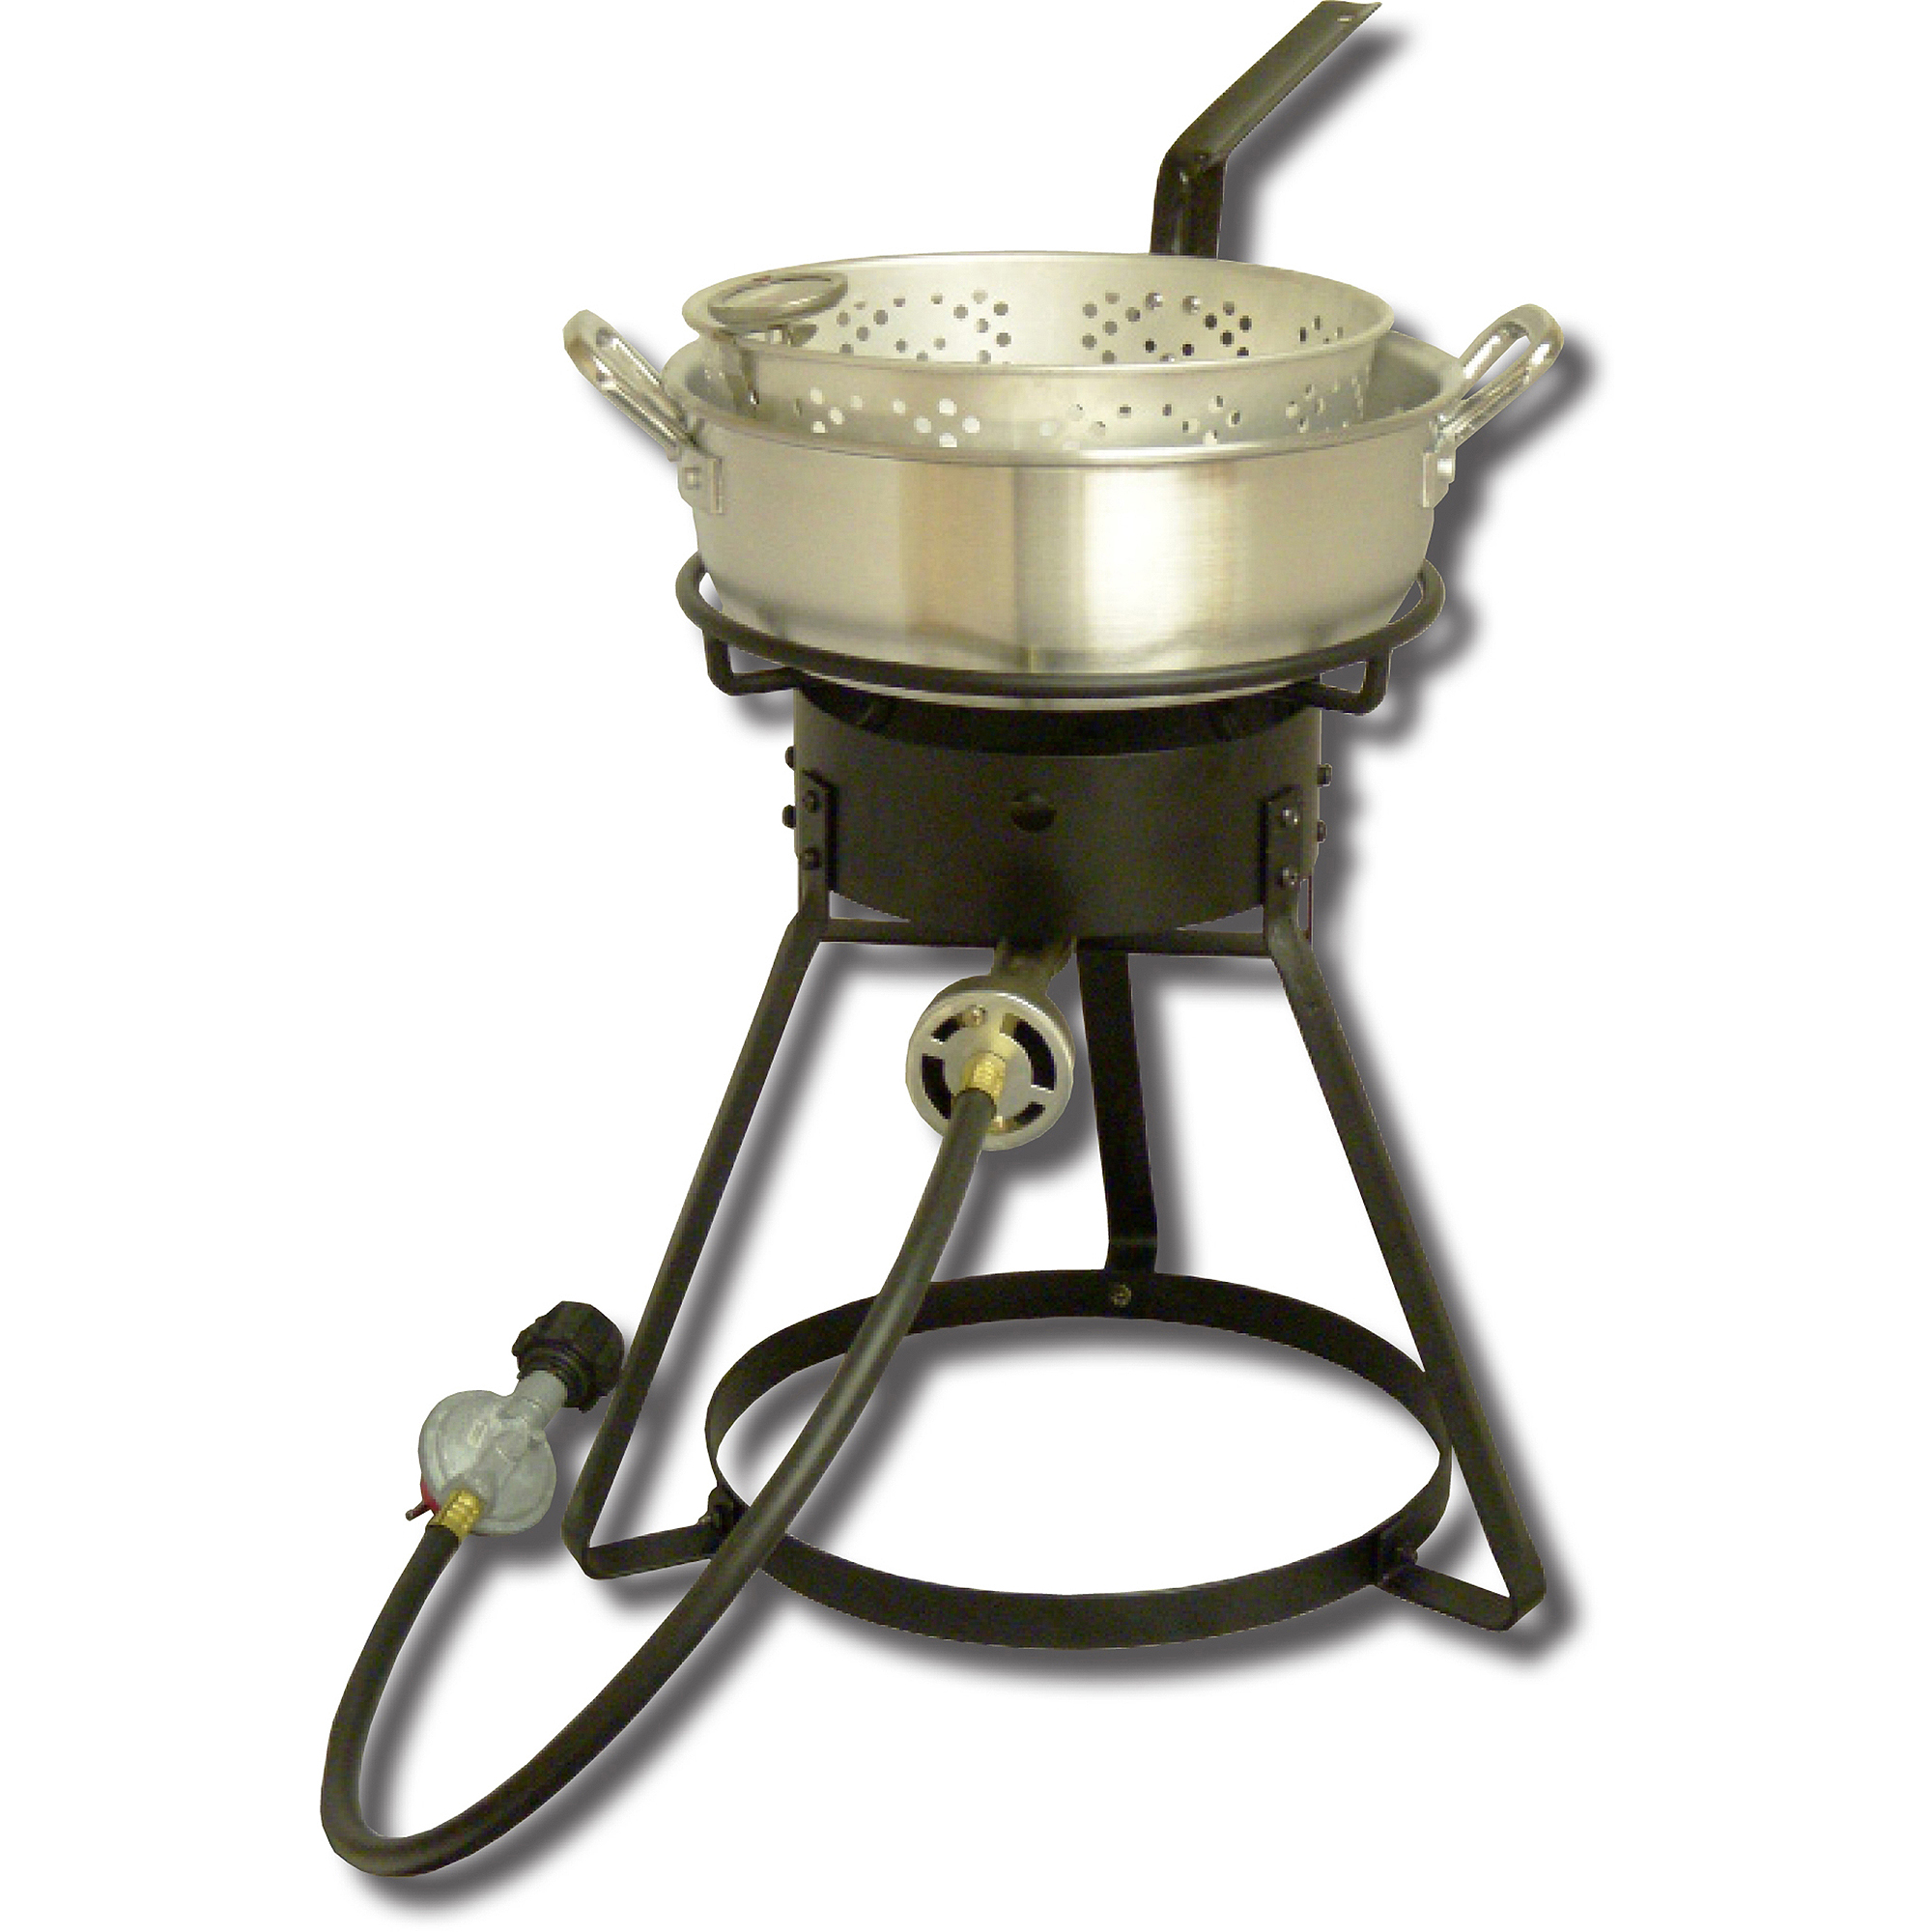 "King Kooker 16"" Bolt-Together Propane Outdoor Cooker Package with Aluminum Fry Pan and Basket"